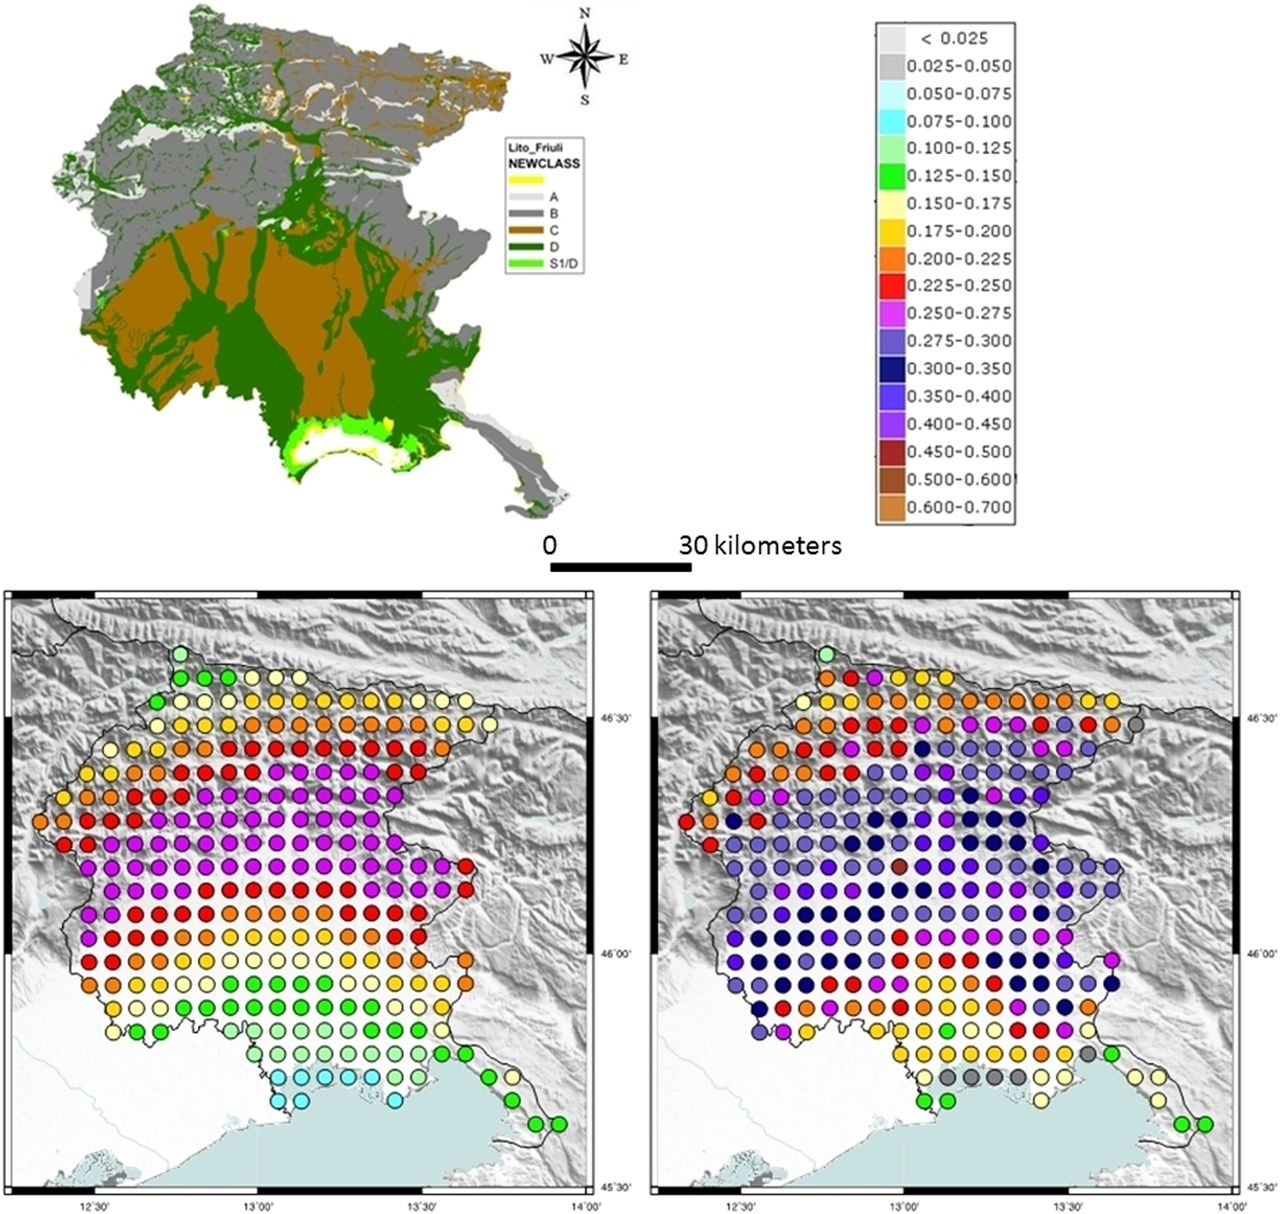 Site classification map of Italy based on surface geology